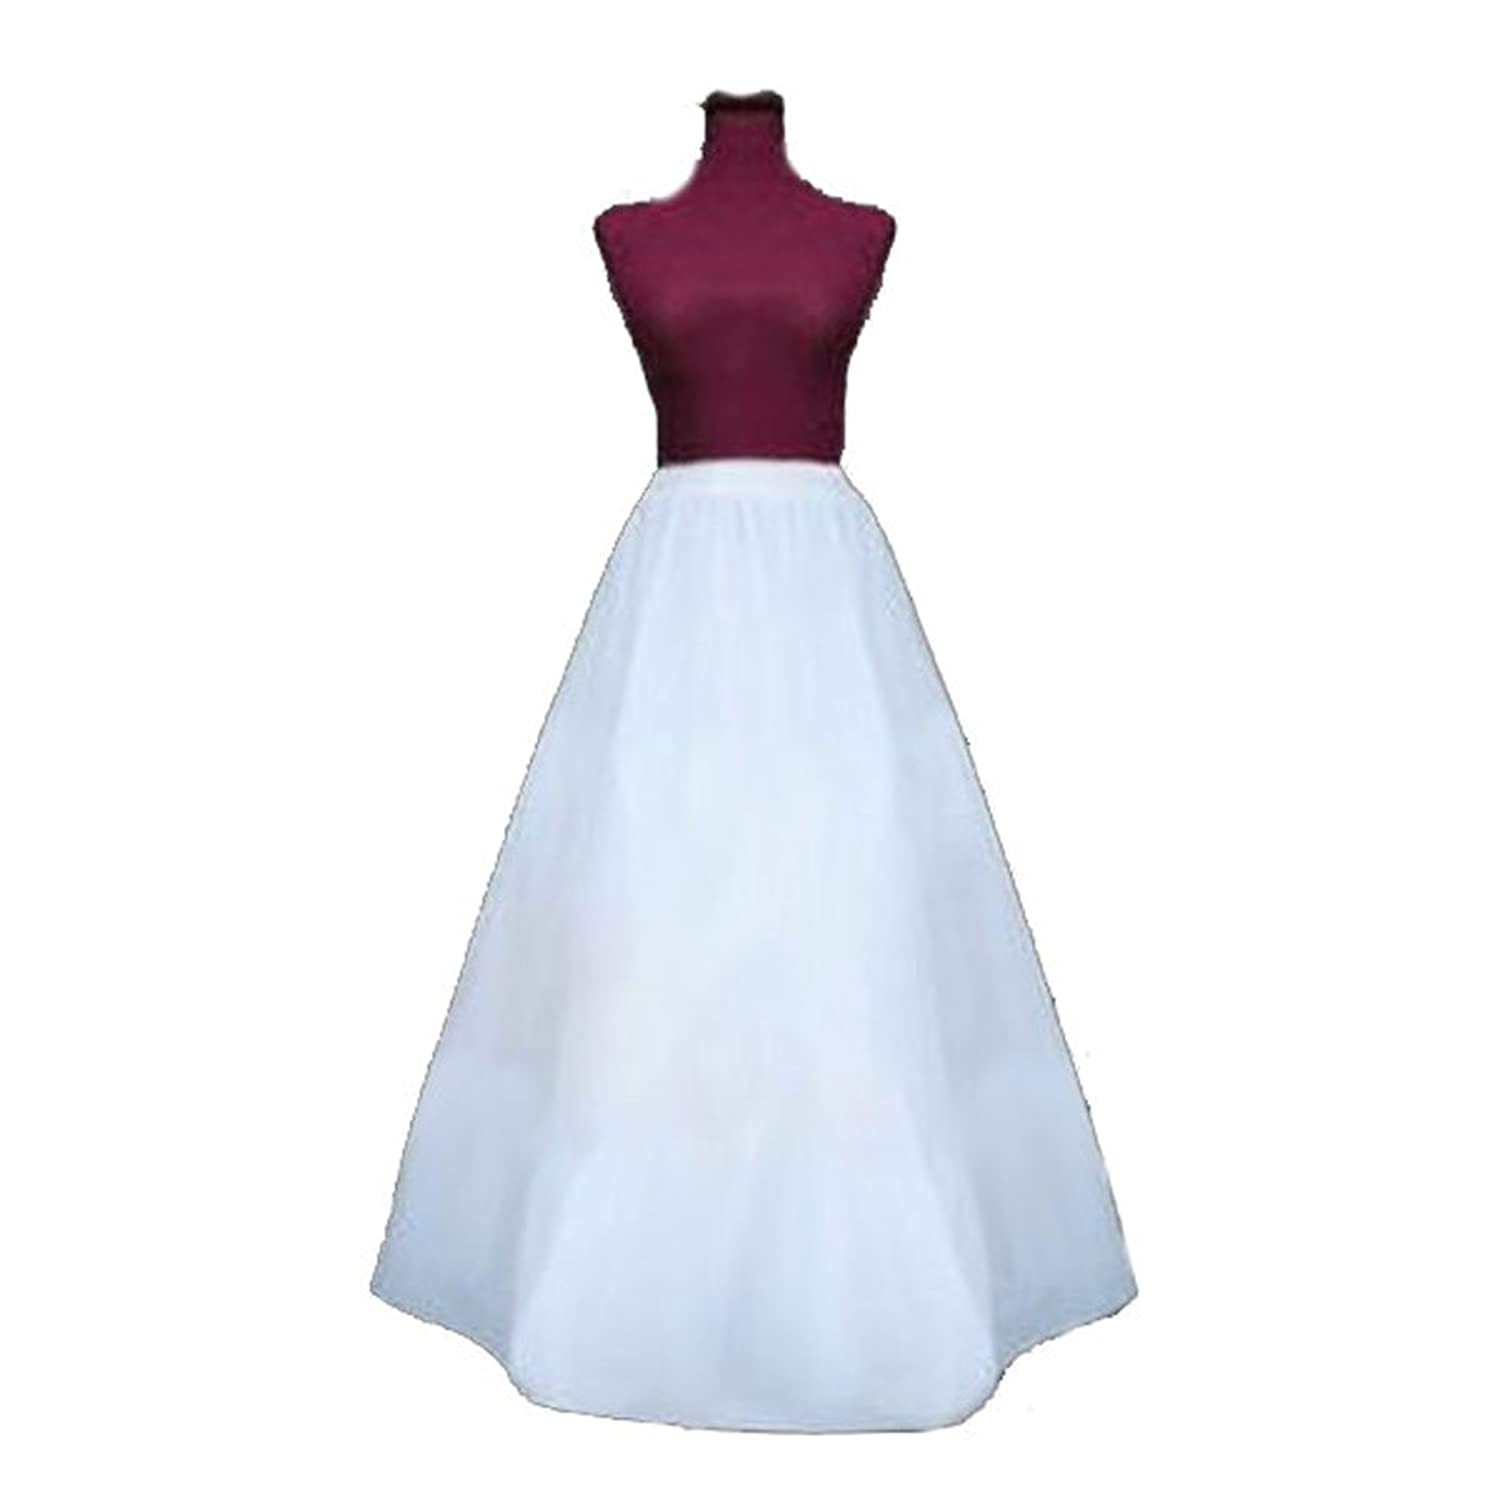 SACAS A Line Layered Bridal Wedding Gown Crinoline Petticoat Slip At Amazon Womens Clothing Store White